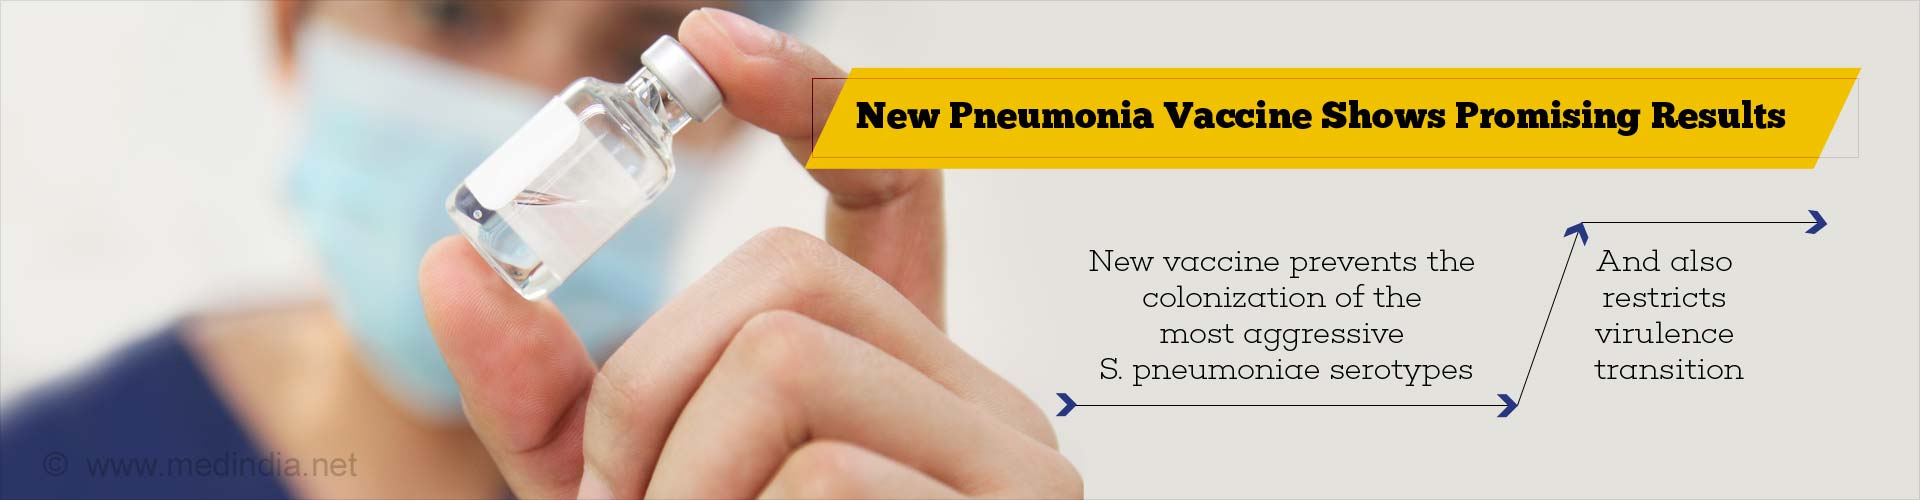 New Vaccine Offers Universal Prevention from Pneumonia